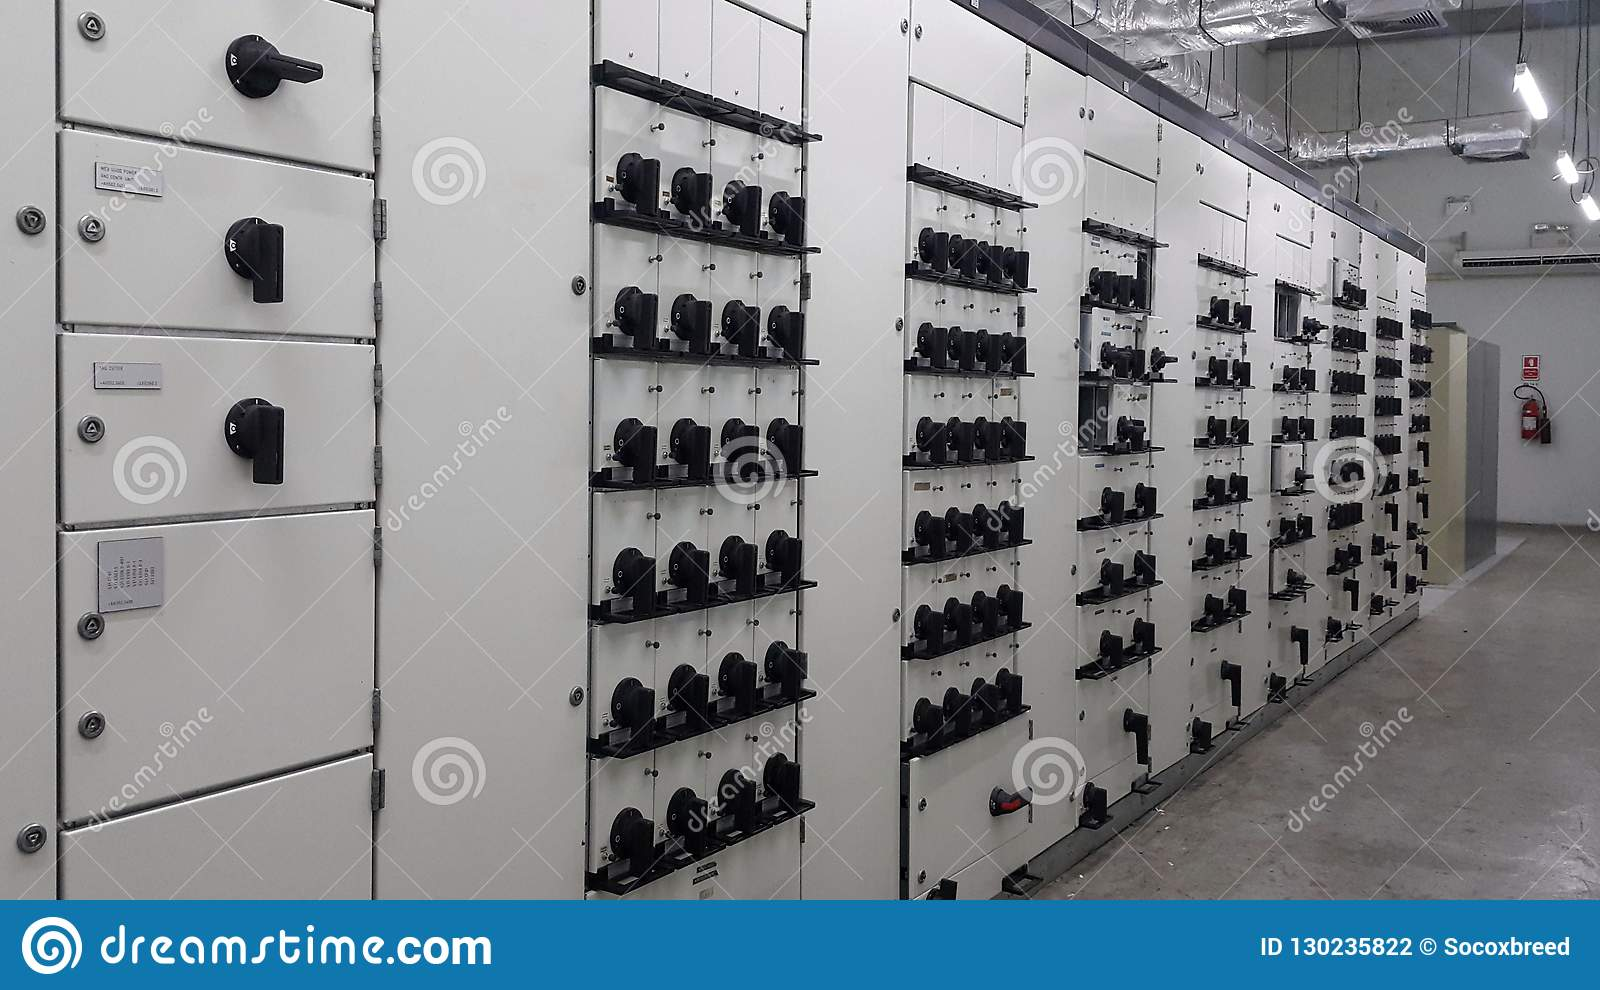 electrical part with accessories in Motor control center room